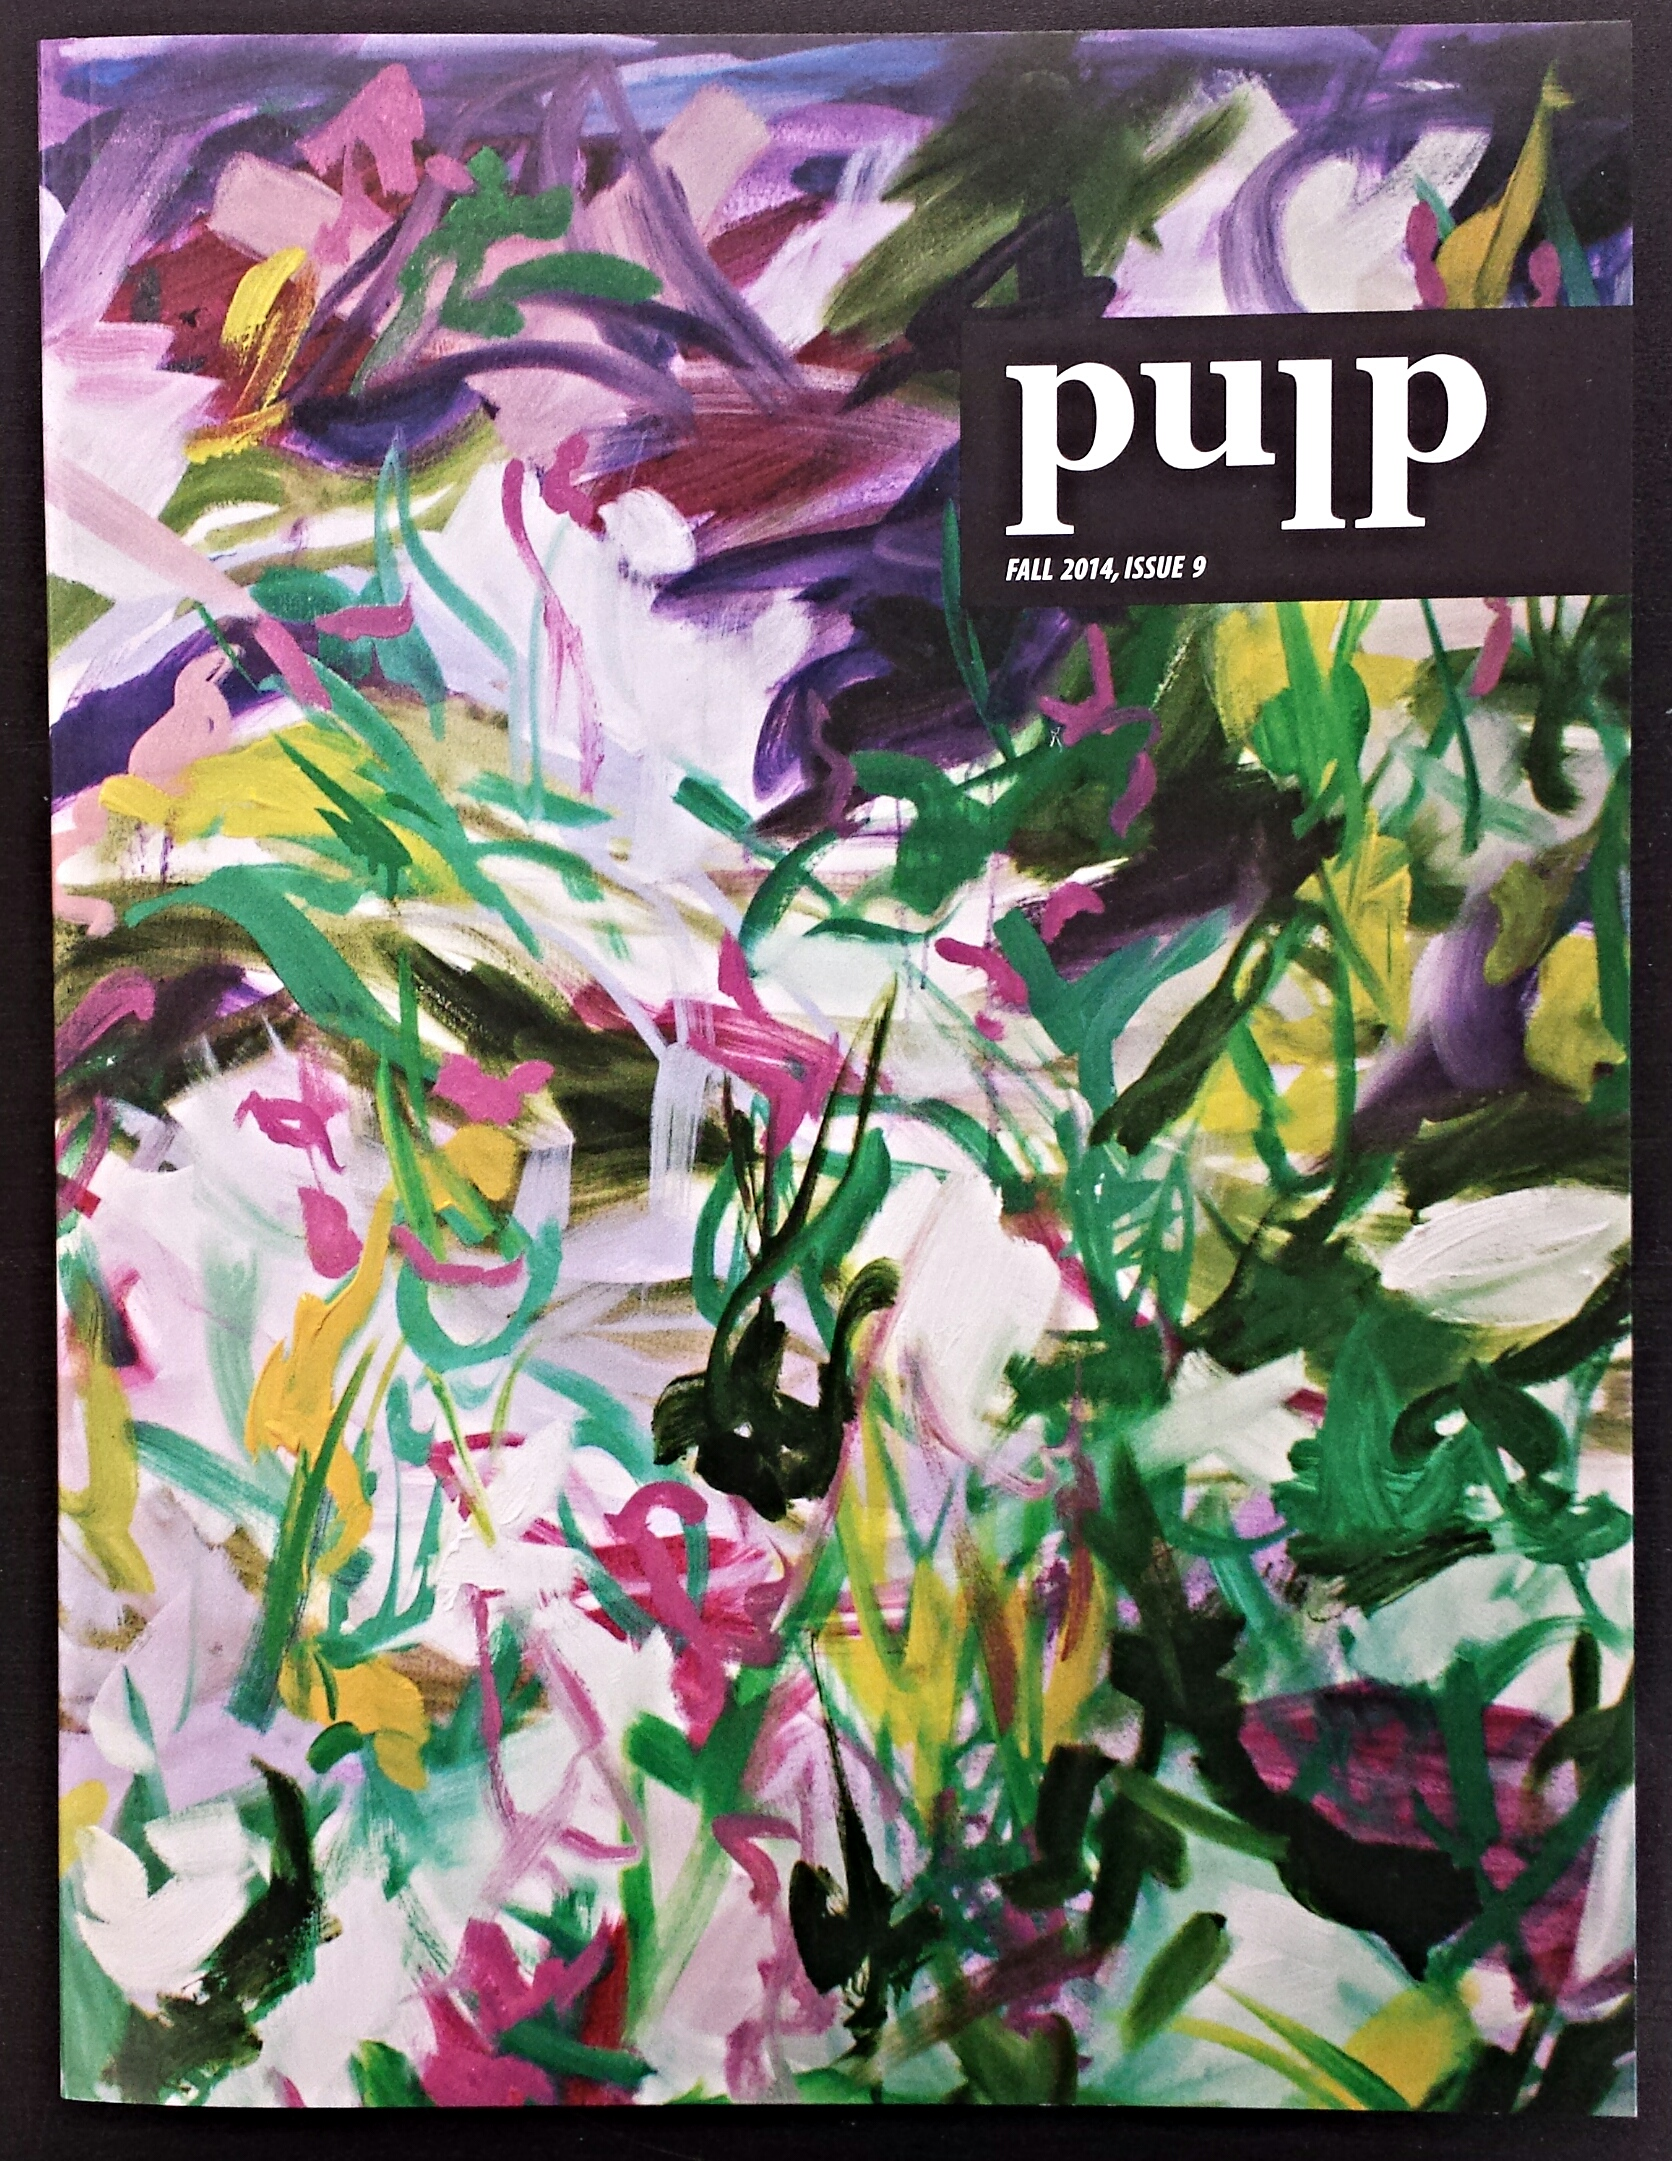 Pulp Issue #9 Launch